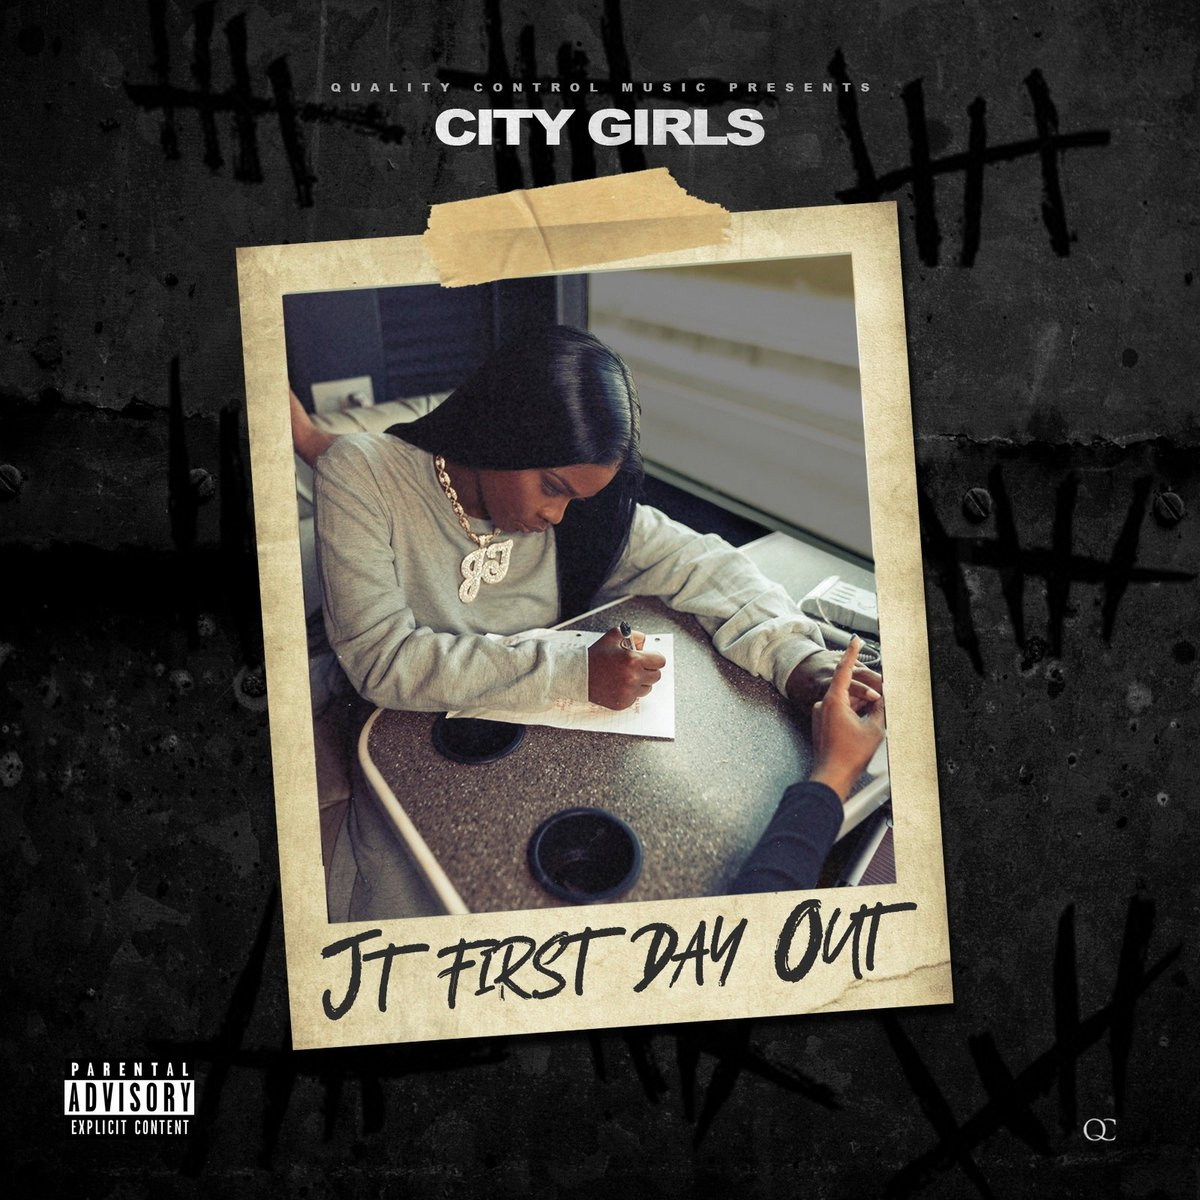 @CityGirls_QC's photo on jt first day out